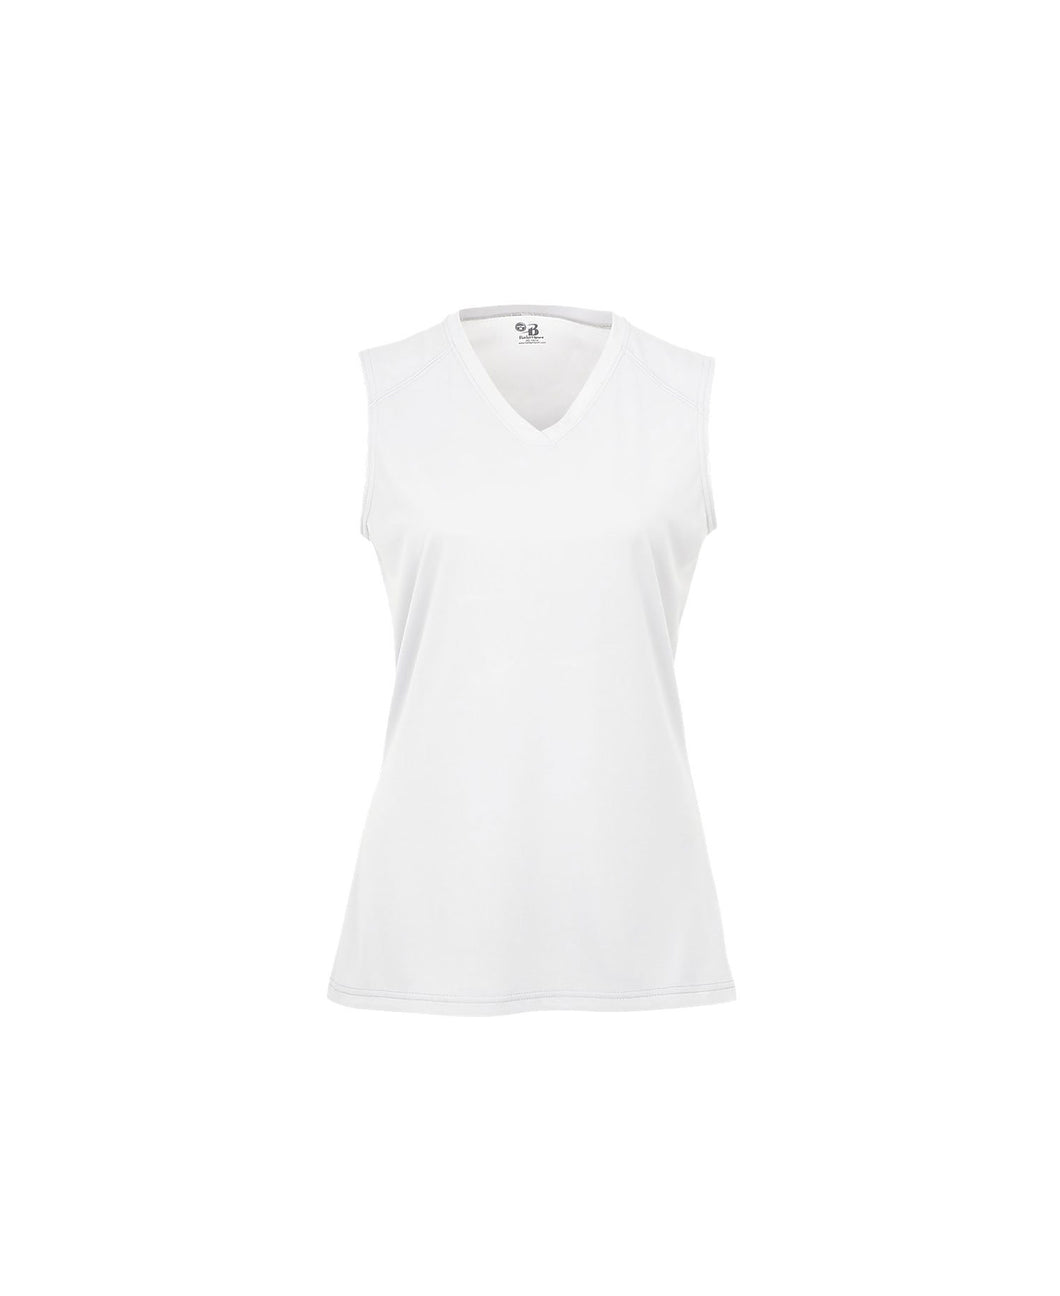 Badger Girls sleeveless white